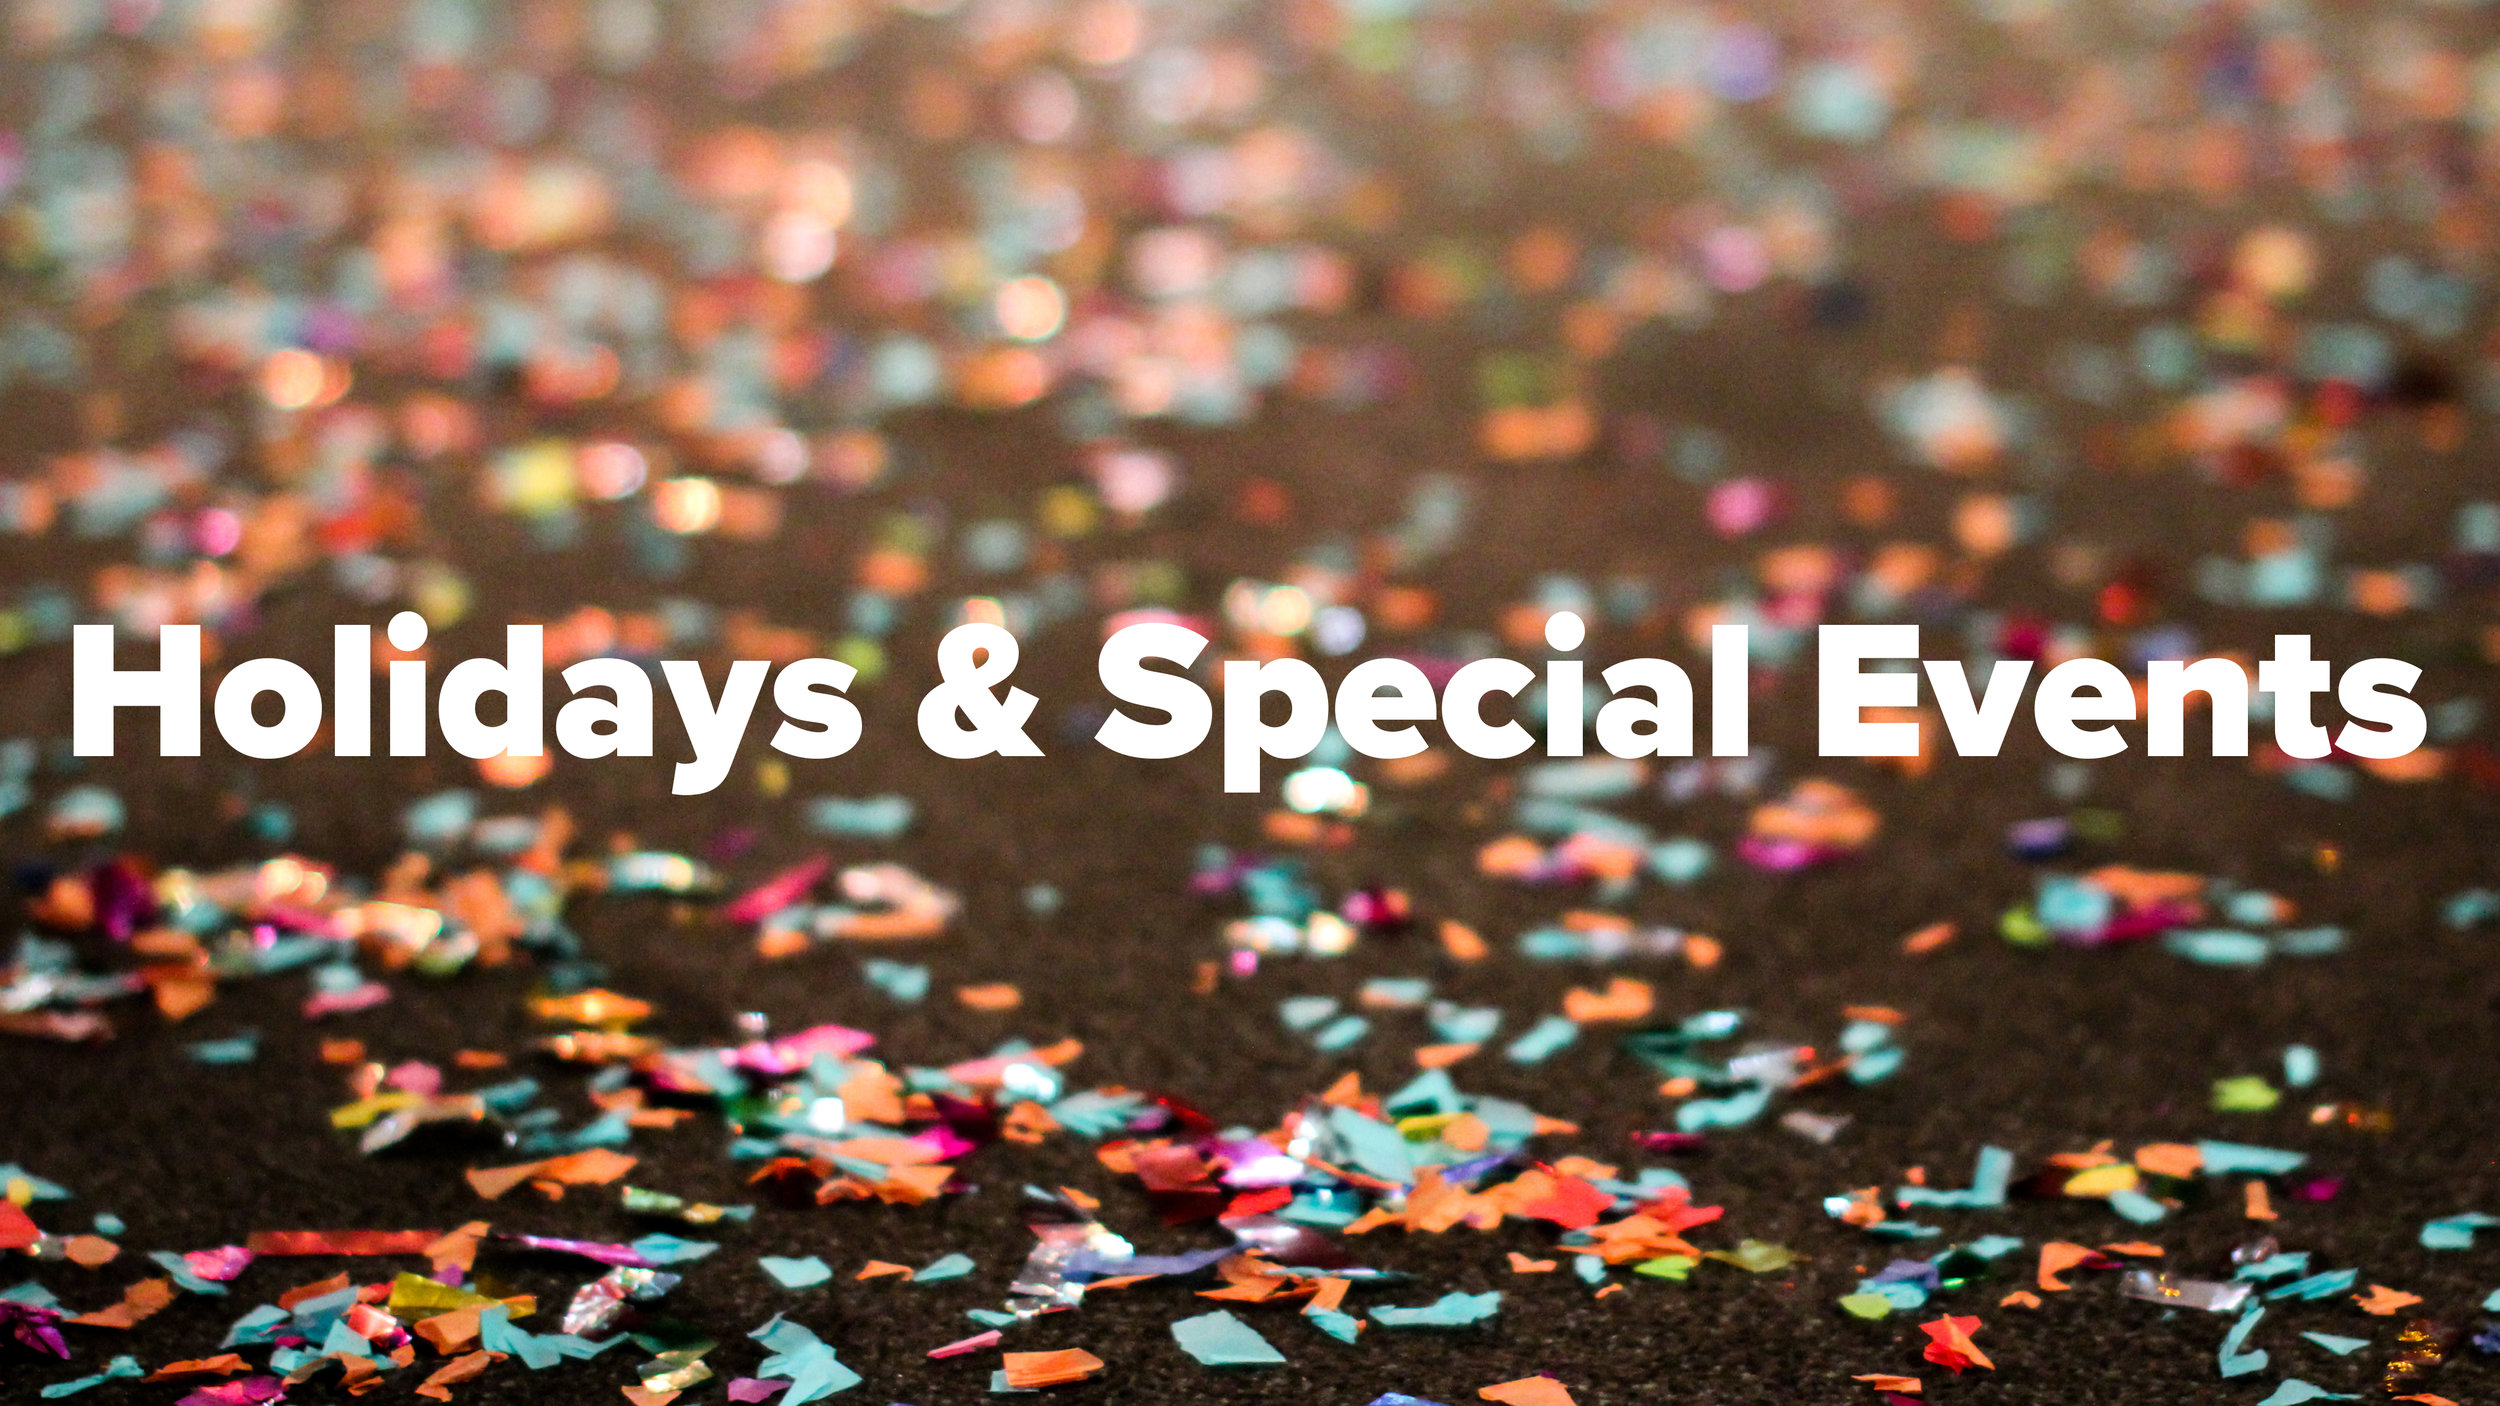 Holidays and Special Events Header.jpg